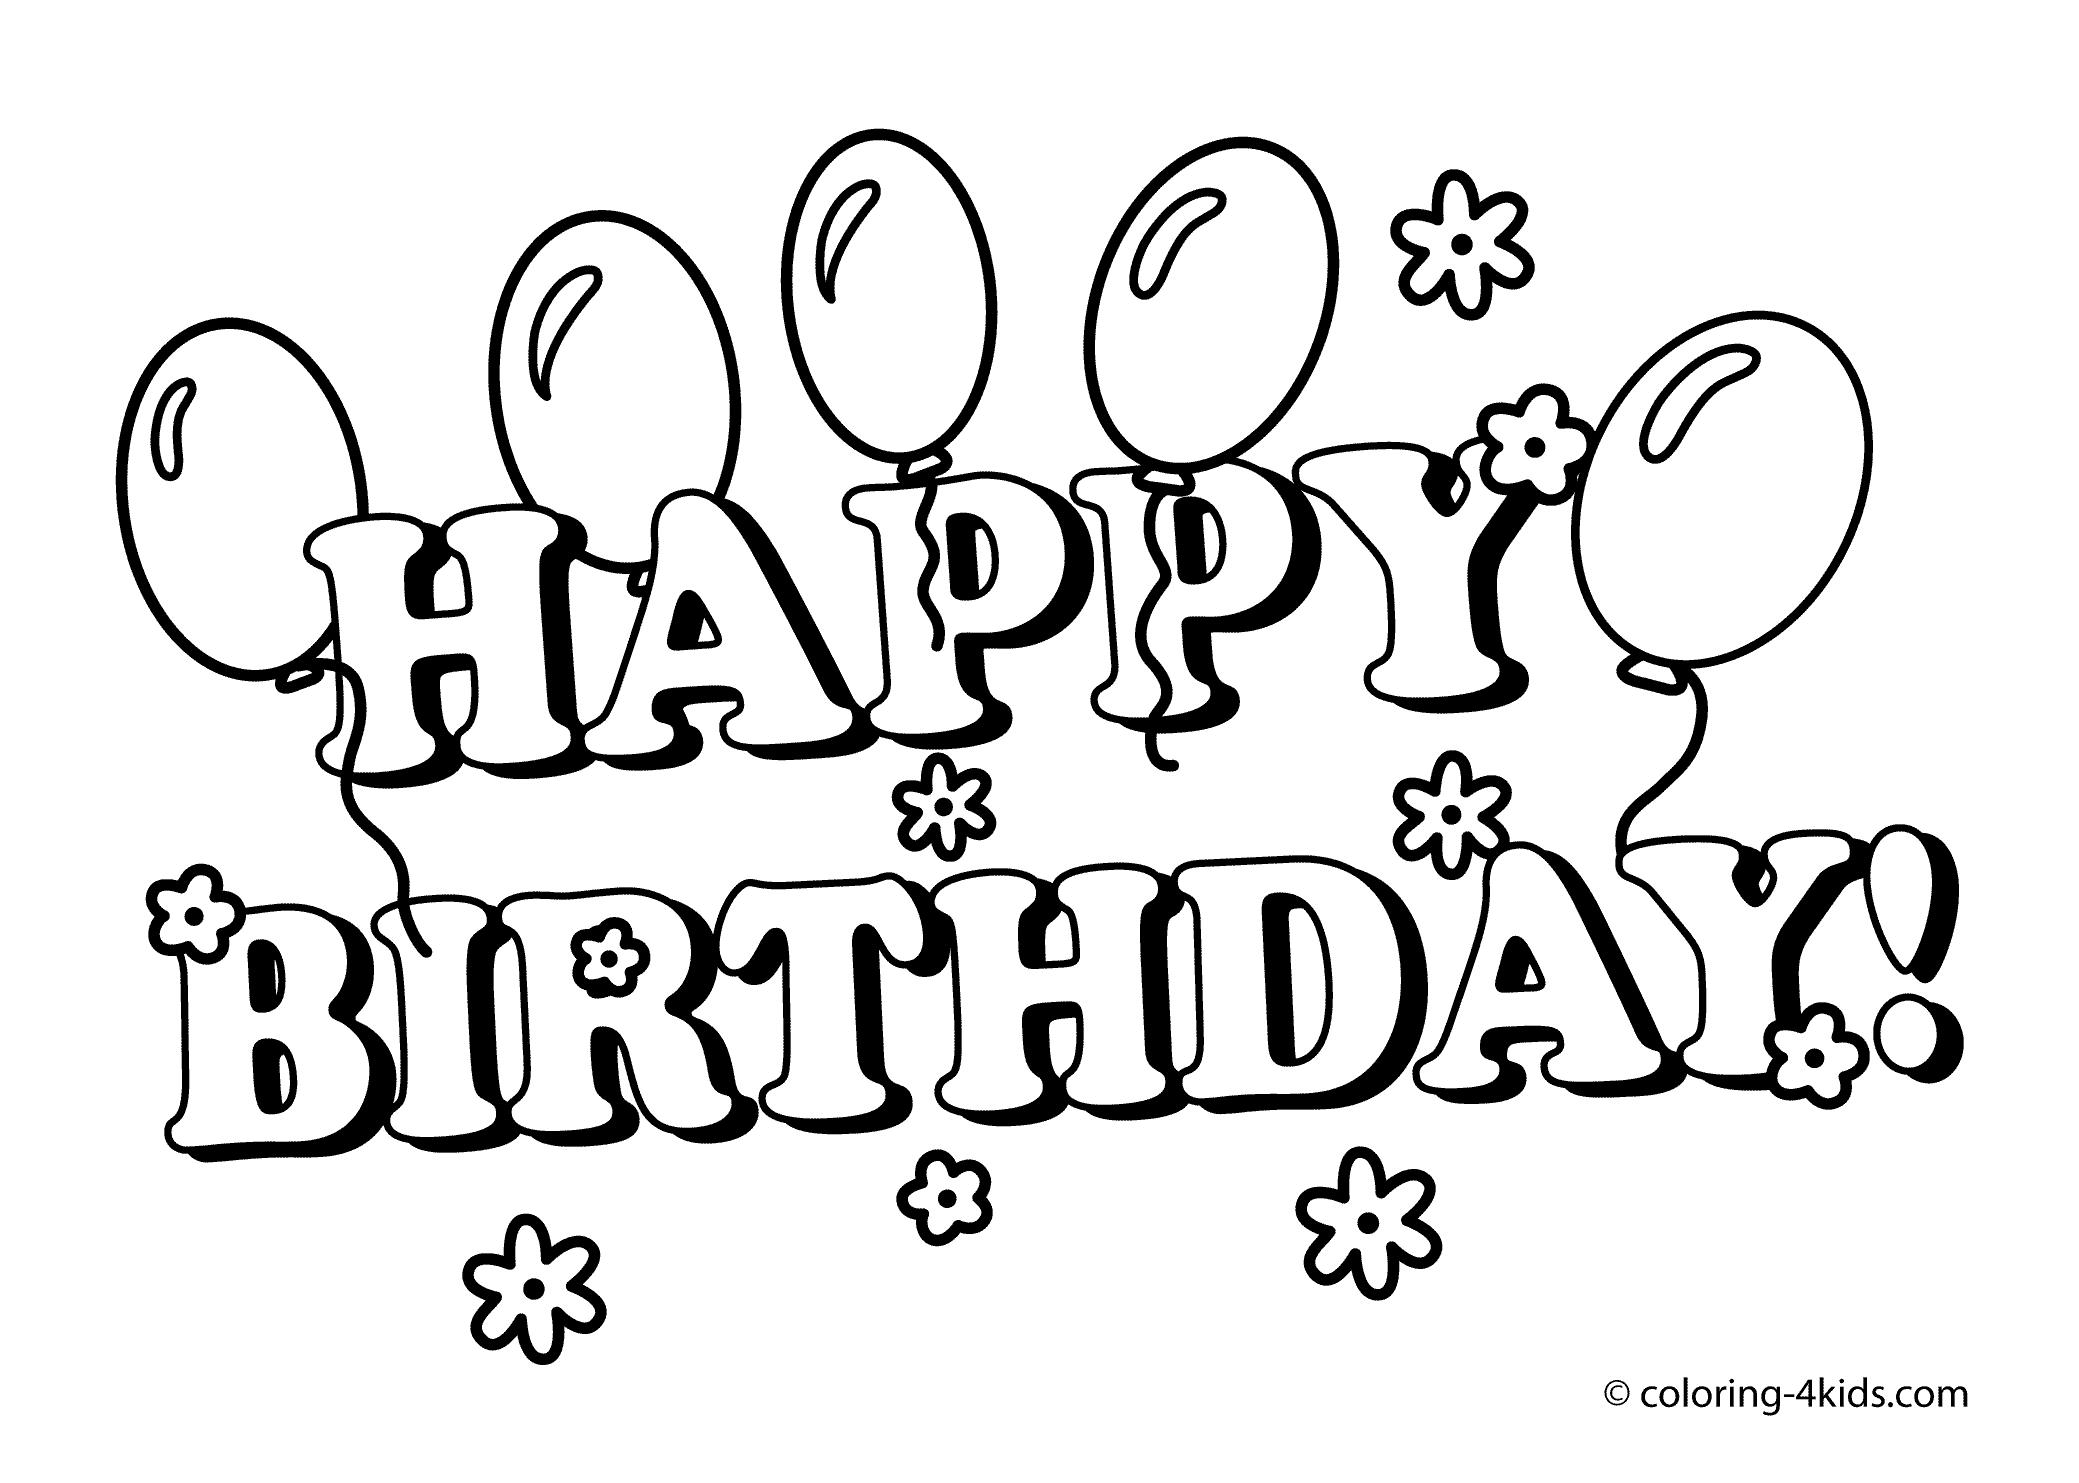 birthday coloring pages for kids ; Free-Online-Happy-Birthday-Coloring-Pages-81-On-Free-Coloring-Pages-For-Kids-with-Happy-Birthday-Coloring-Pages